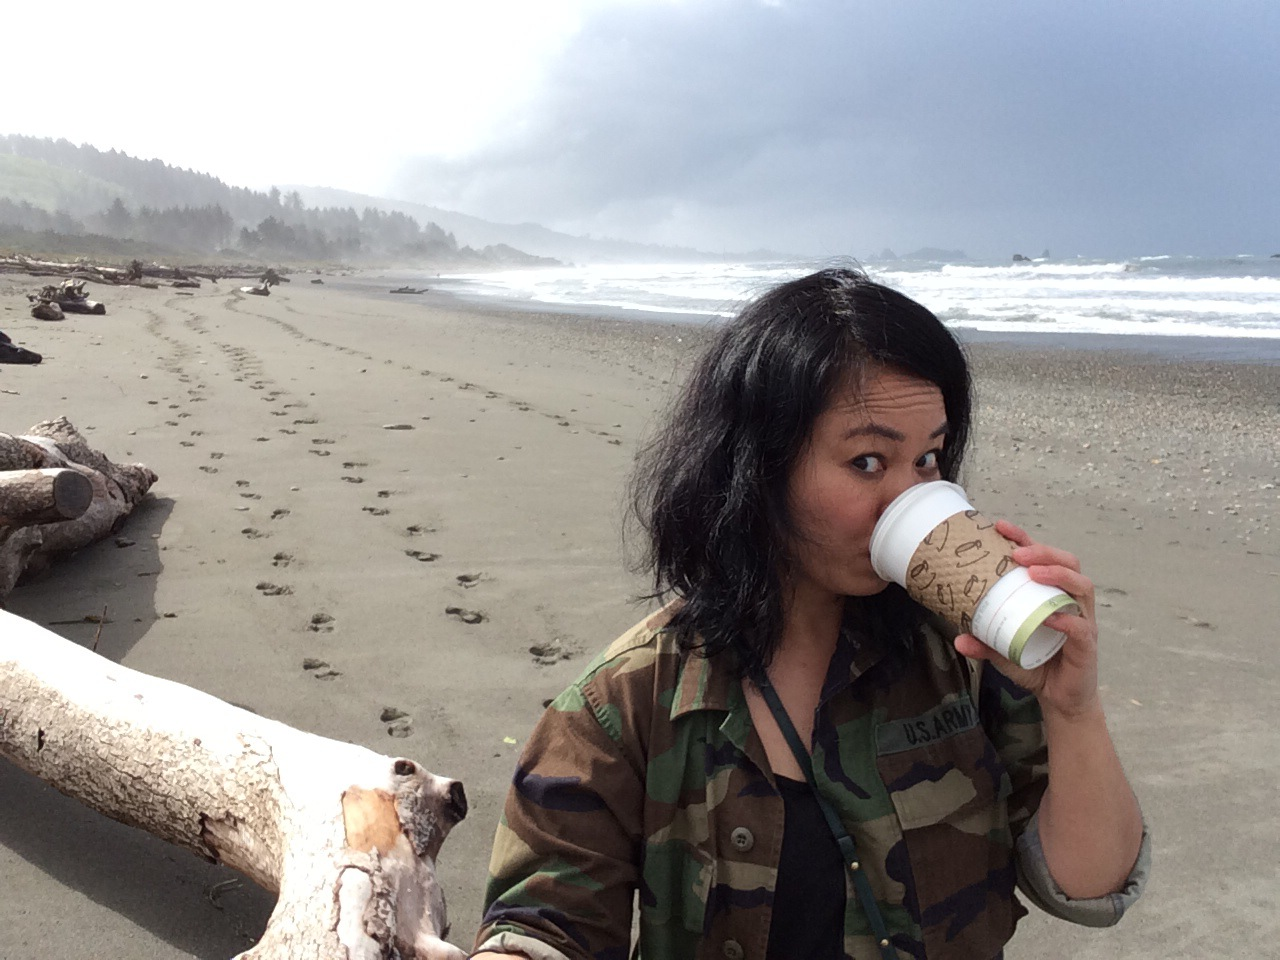 Oregon Coast Selfie - solo traveler photo tips